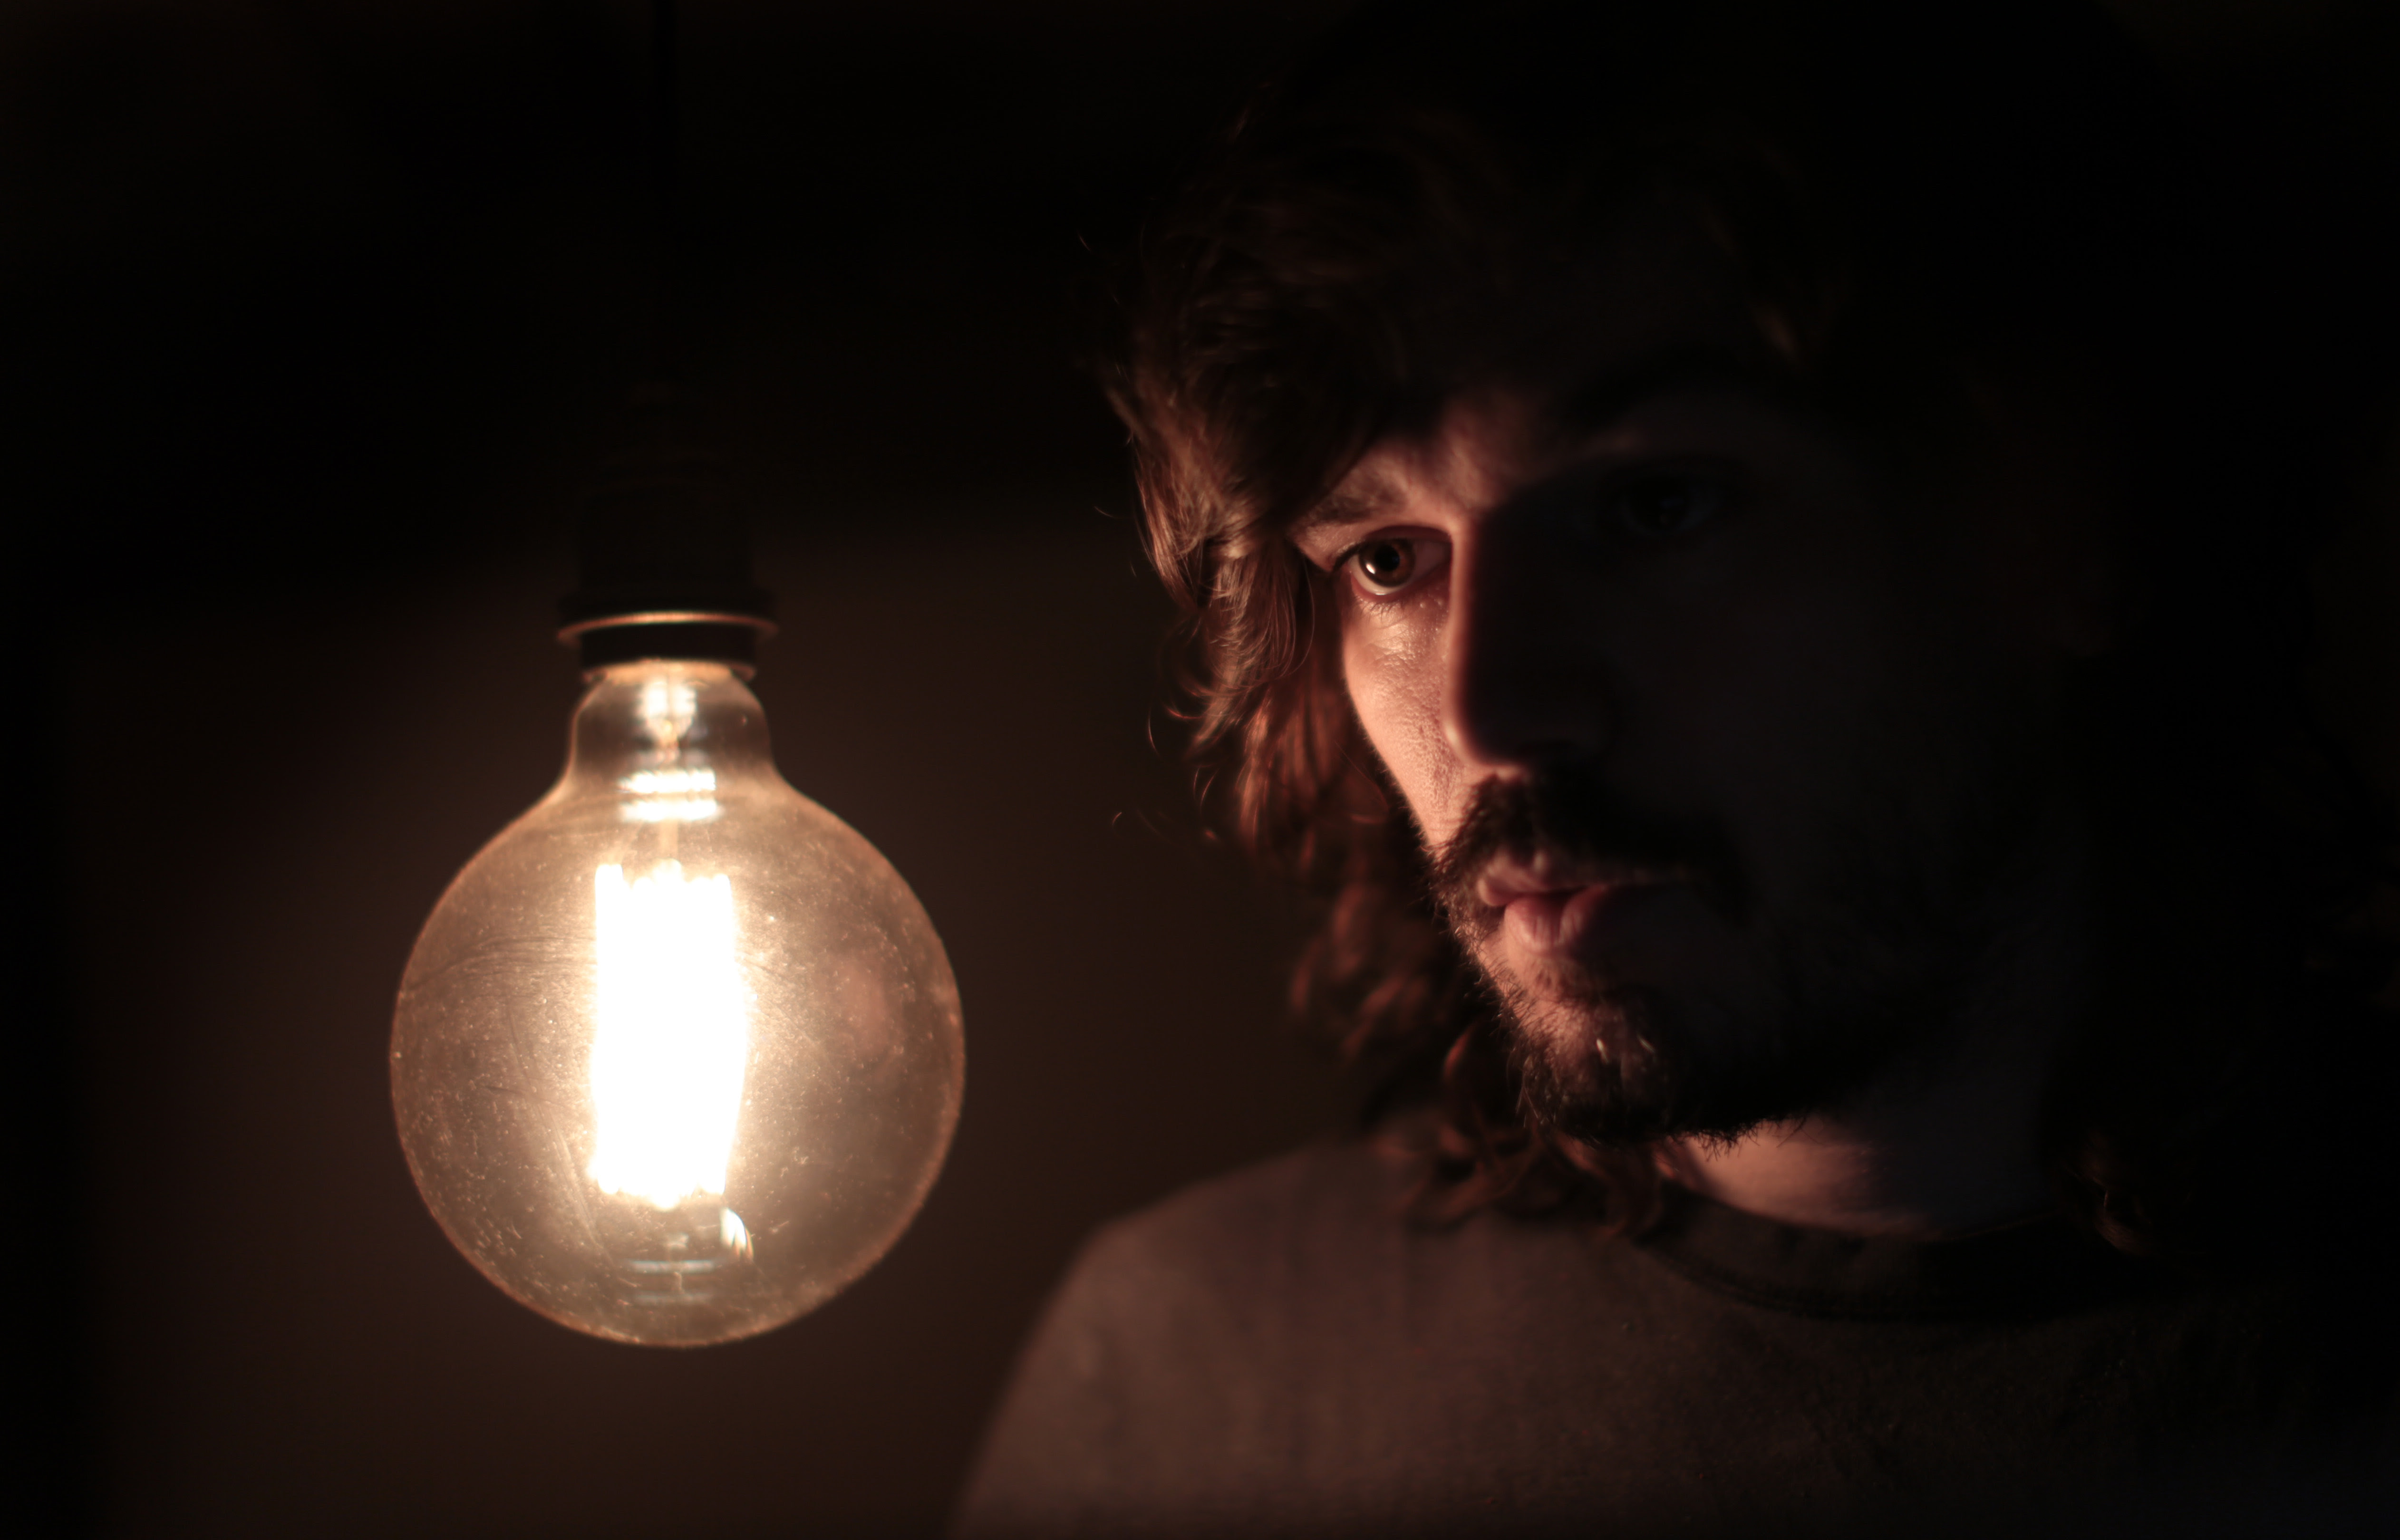 Bibio is now reissuing two of his most celebrated albums, Fi and Ambivalence Avenue